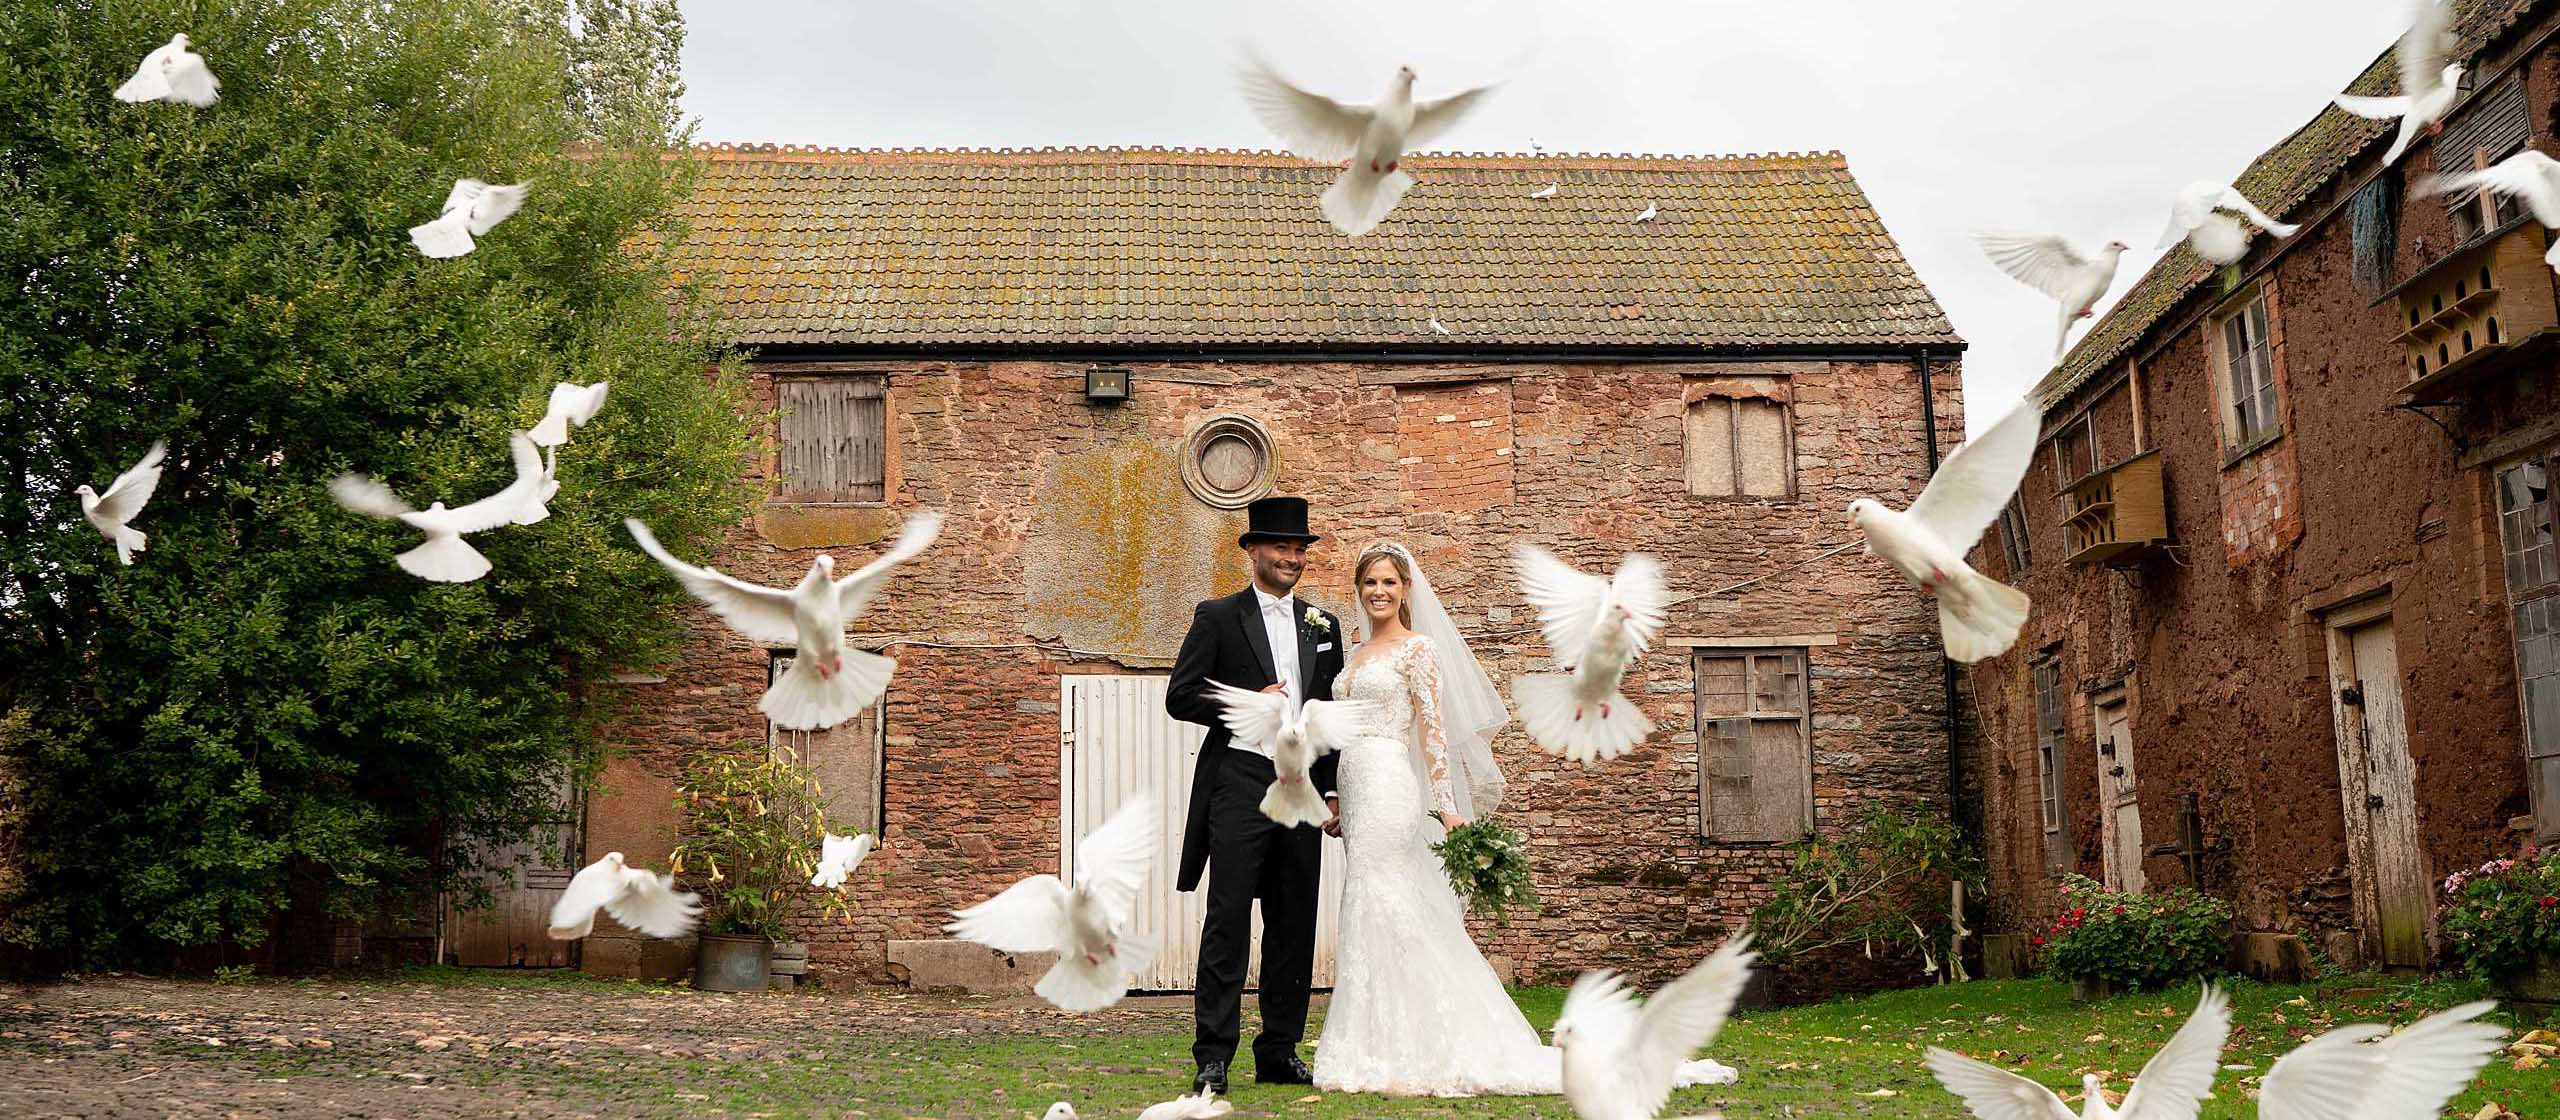 Maunsel House Wedding Photographer - Doves talking flight